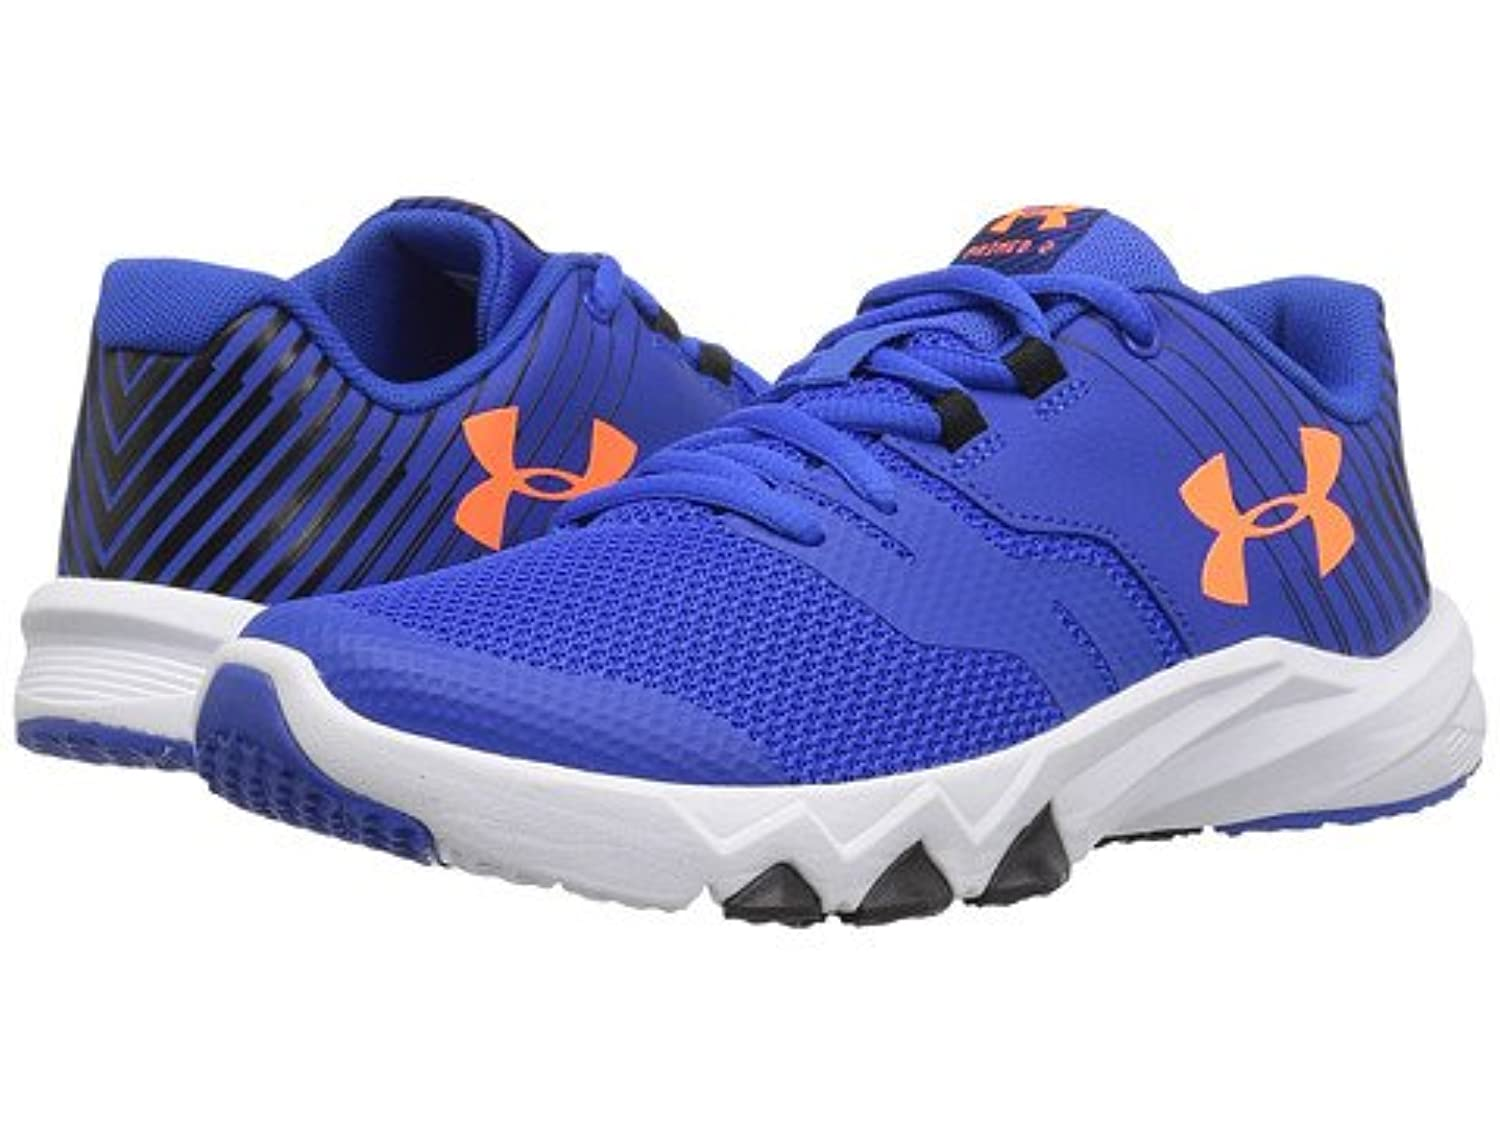 (アンダーアーマー) UNDER ARMOUR キッズランニングシューズ??スニーカー?靴 UA BPS Primed 2 (Little Kid) Ultra Blue/White/Magma Orange 10.5 Little Kid n/a M [並行輸入品]